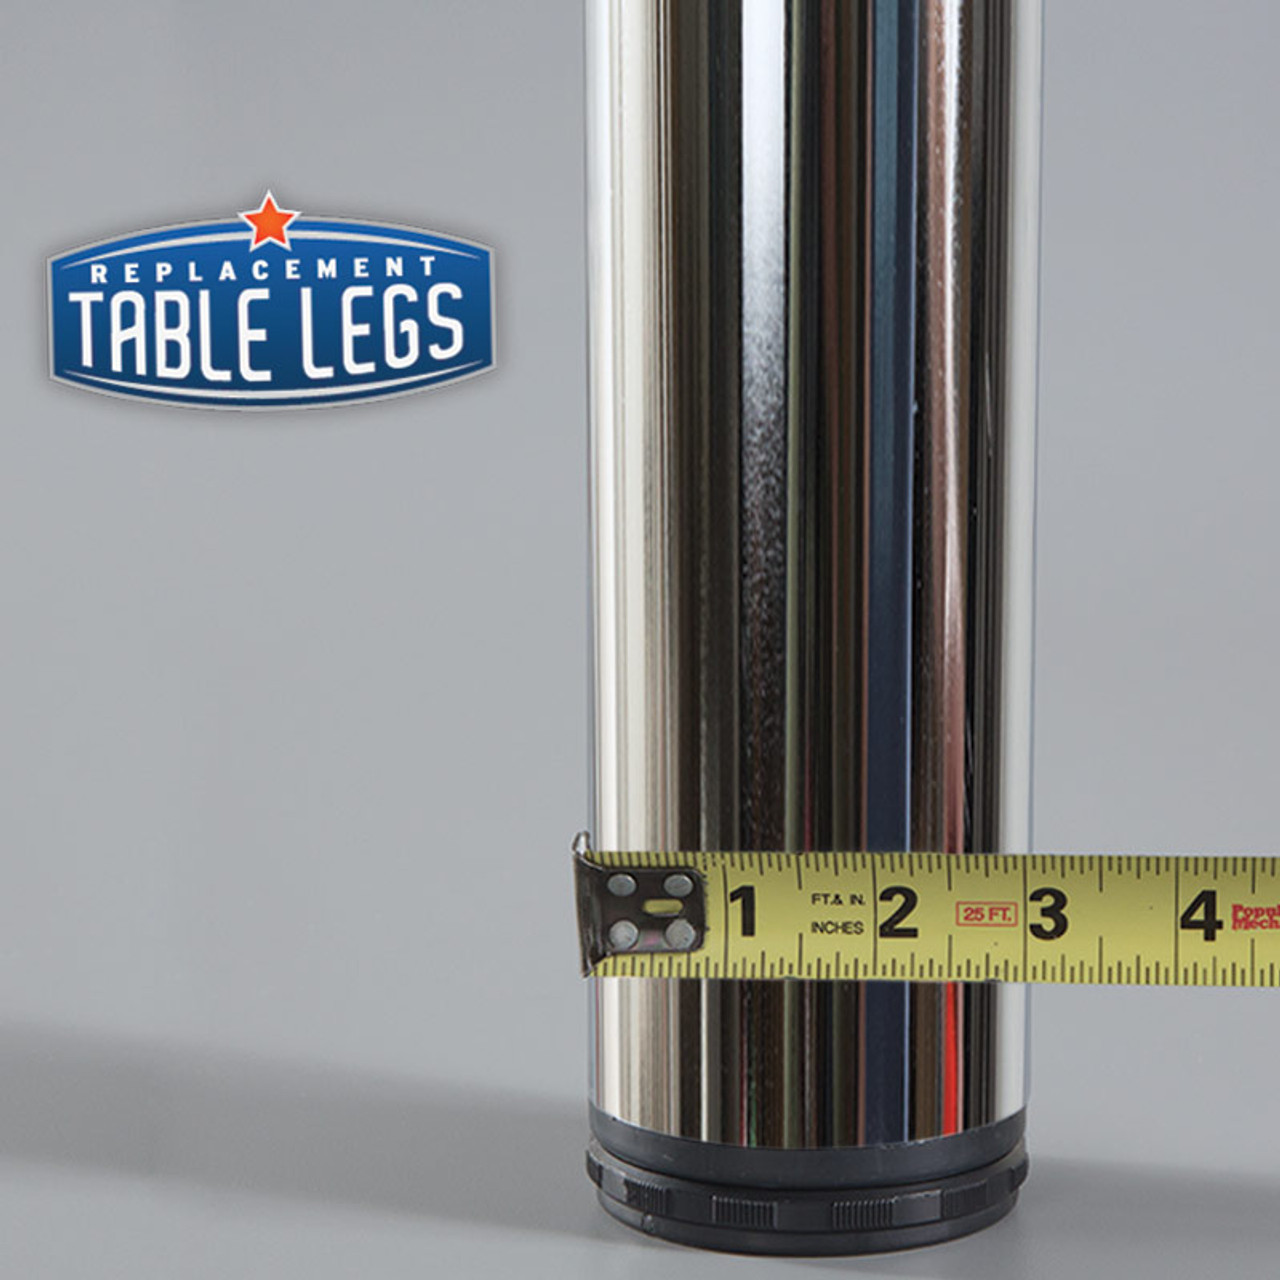 "3"" diameter column - replacementtablelegs.com"